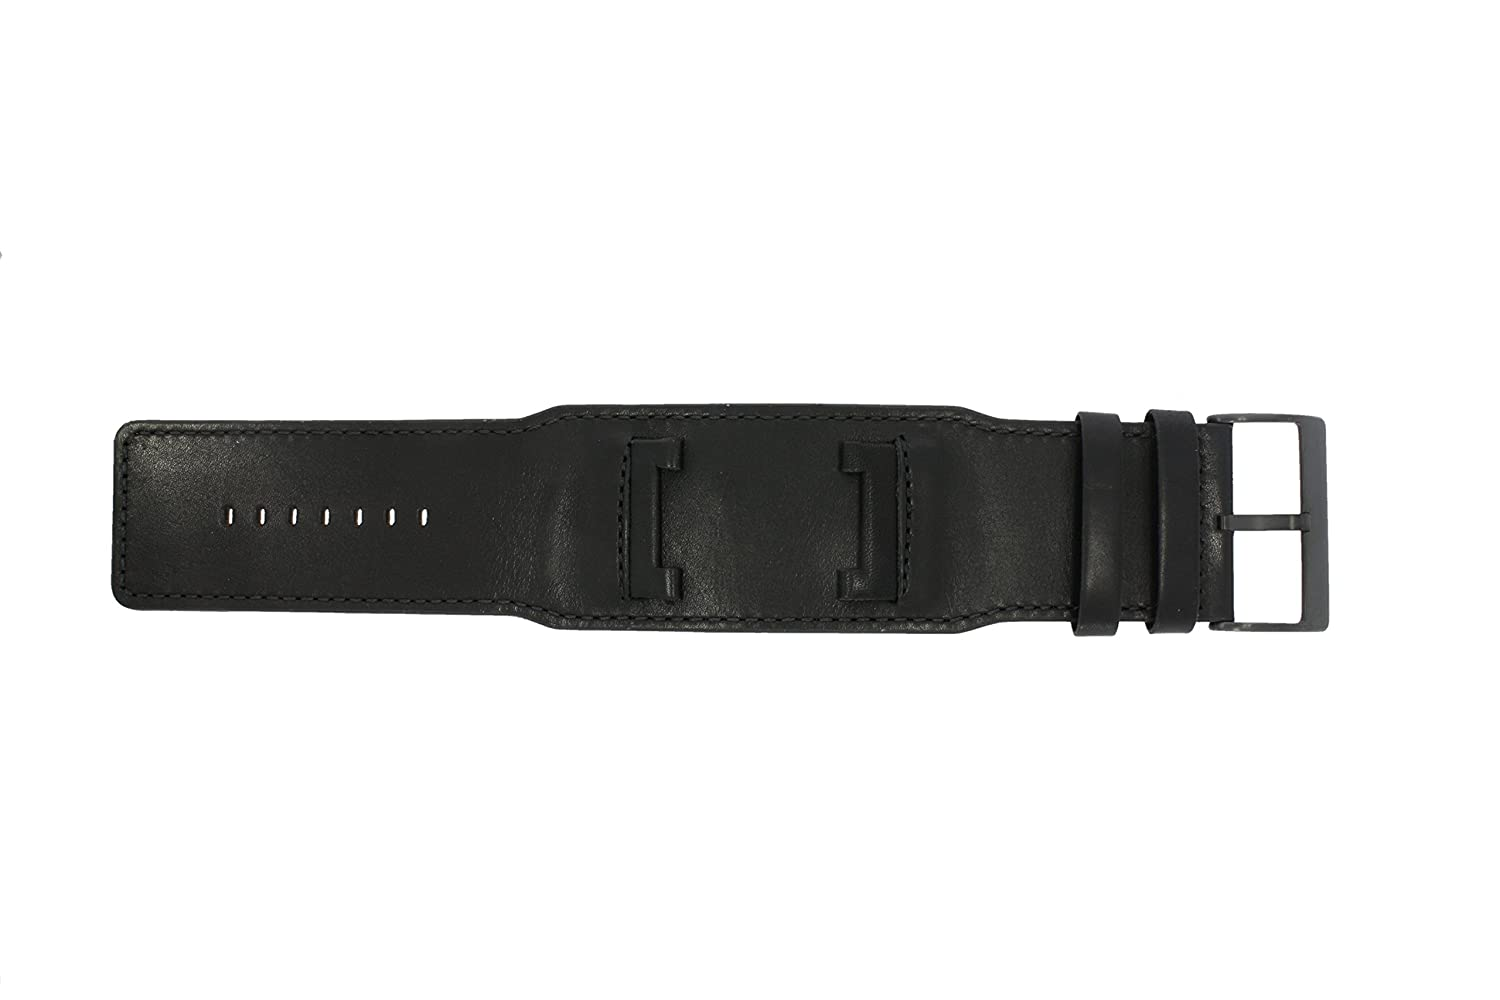 47c5703668 Guess watch strap W10265G1 Leather Black 32mm (Only watch strap - WATCH NOT  INCLUDED!)  Amazon.co.uk  Watches